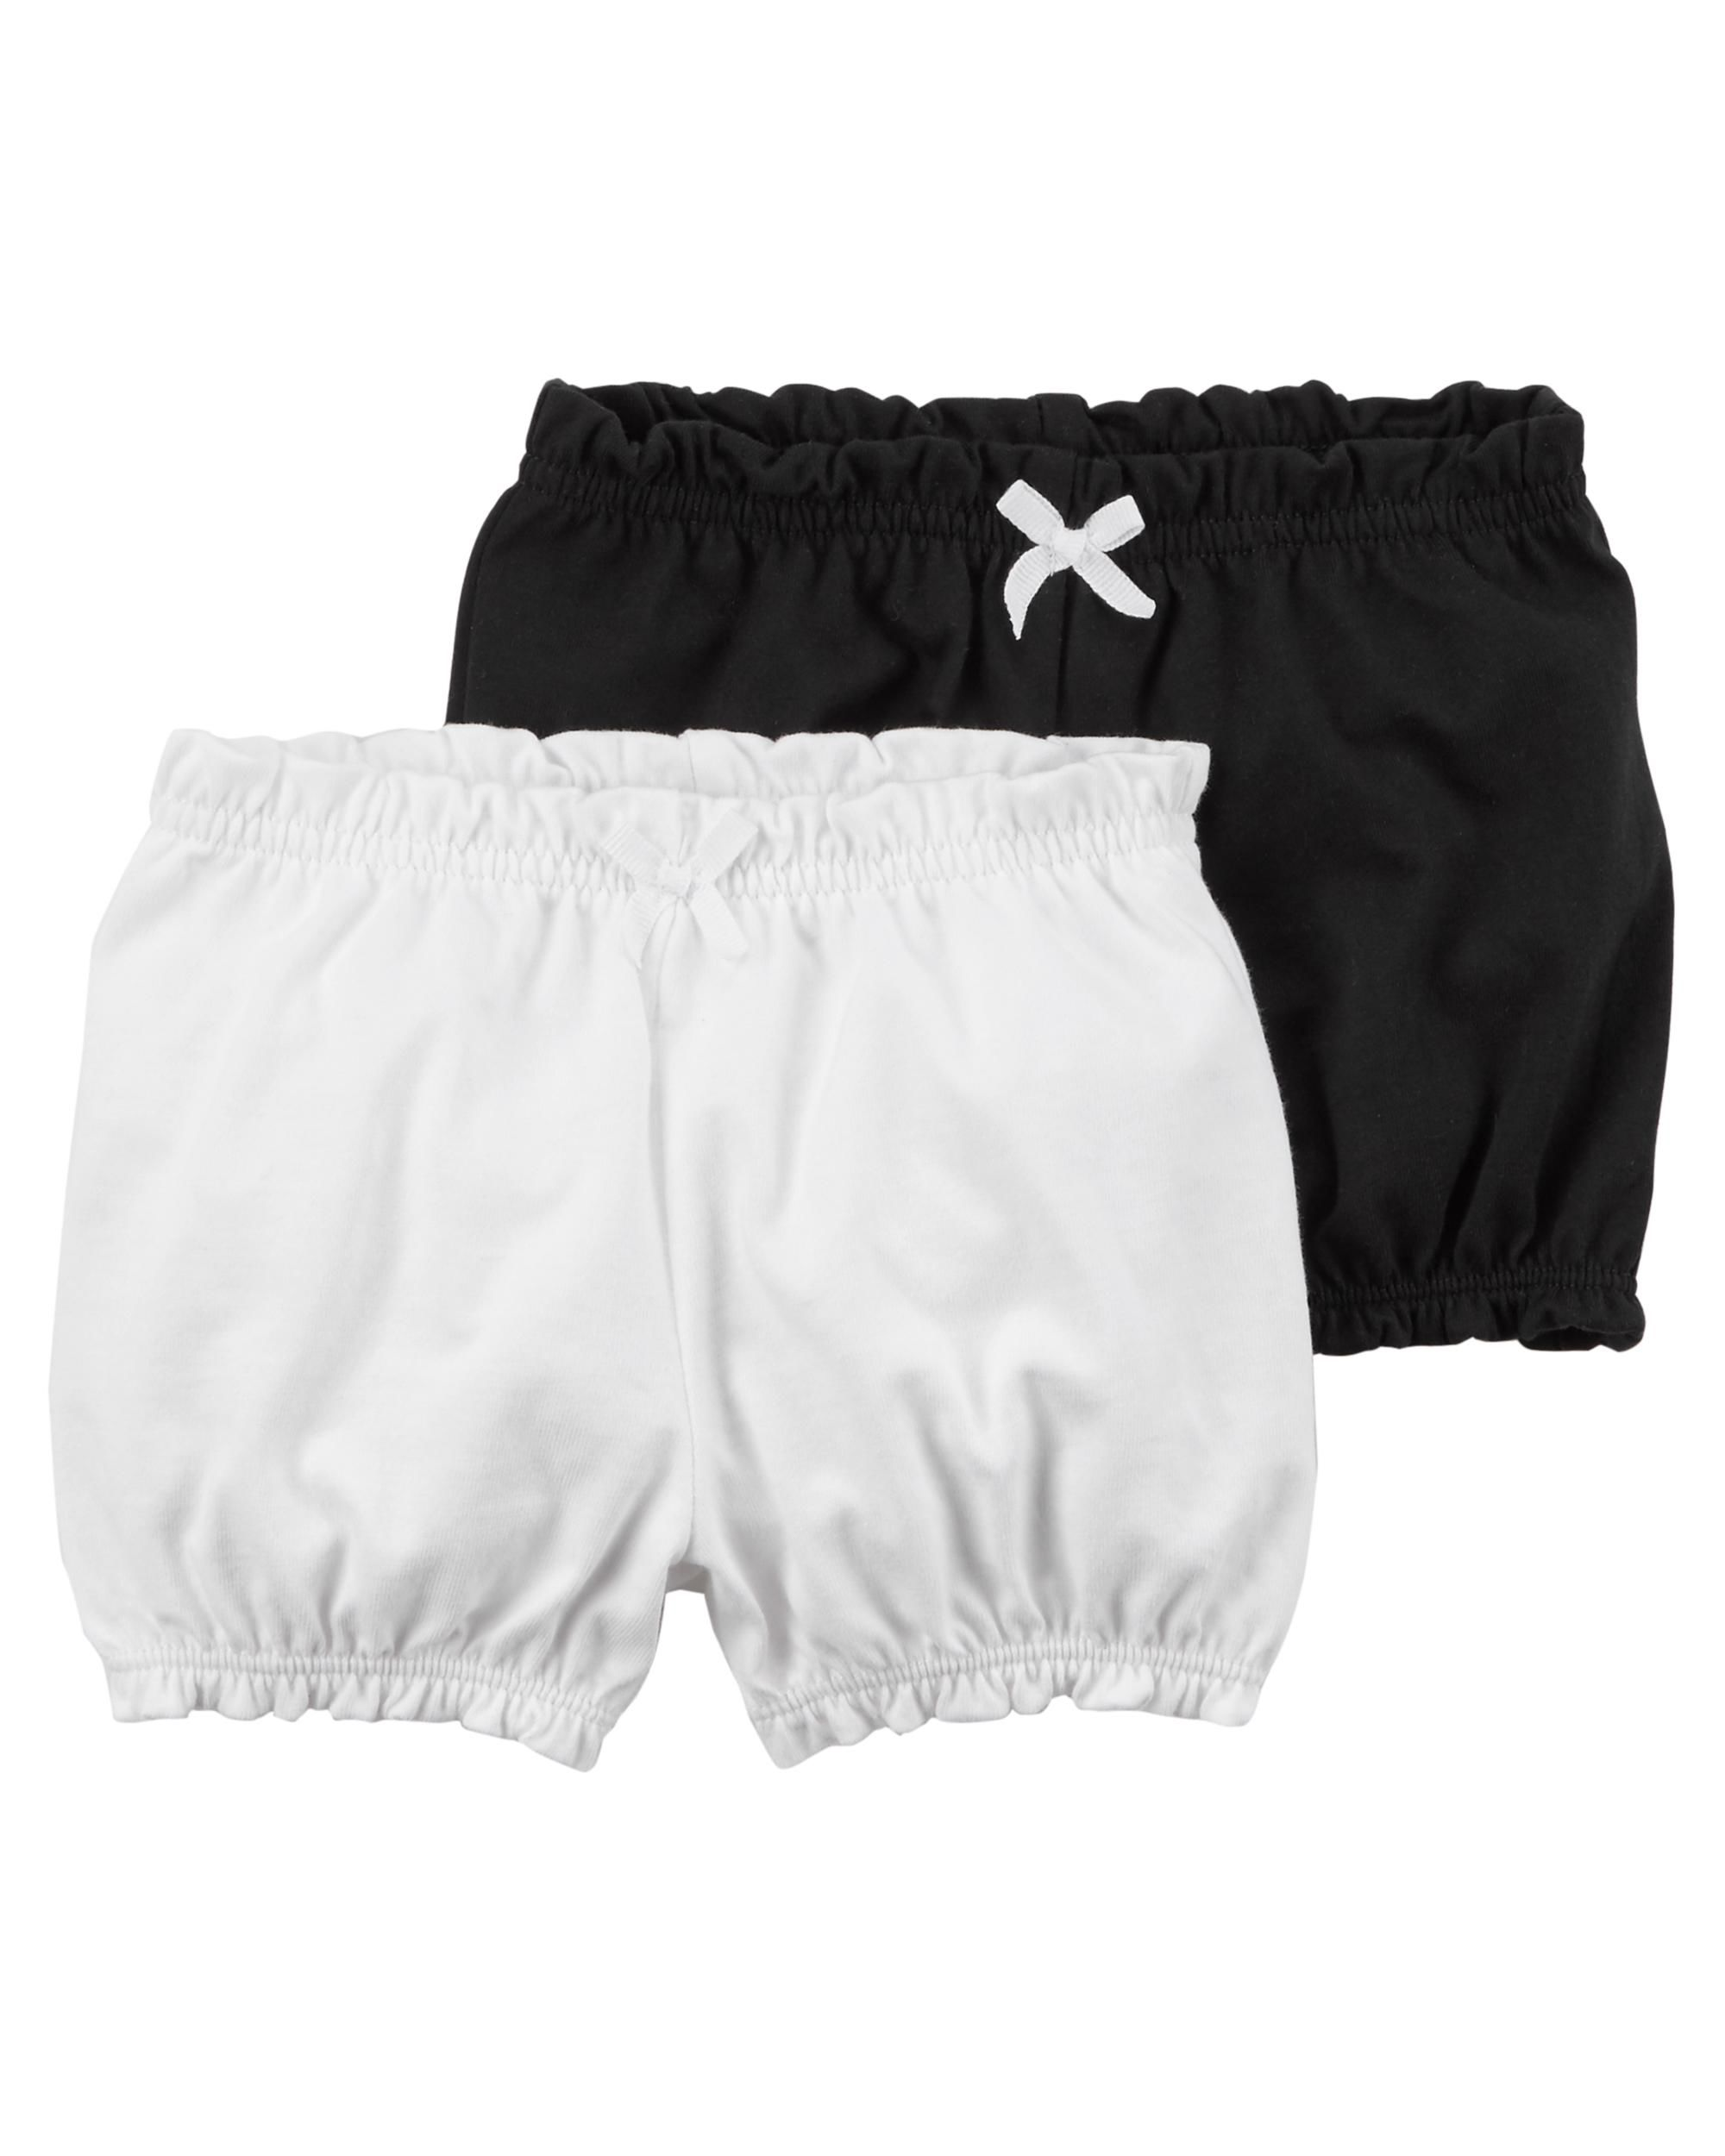 Carter's Baby Girls' 2-Pk. Crinkle Shorts -Black/White